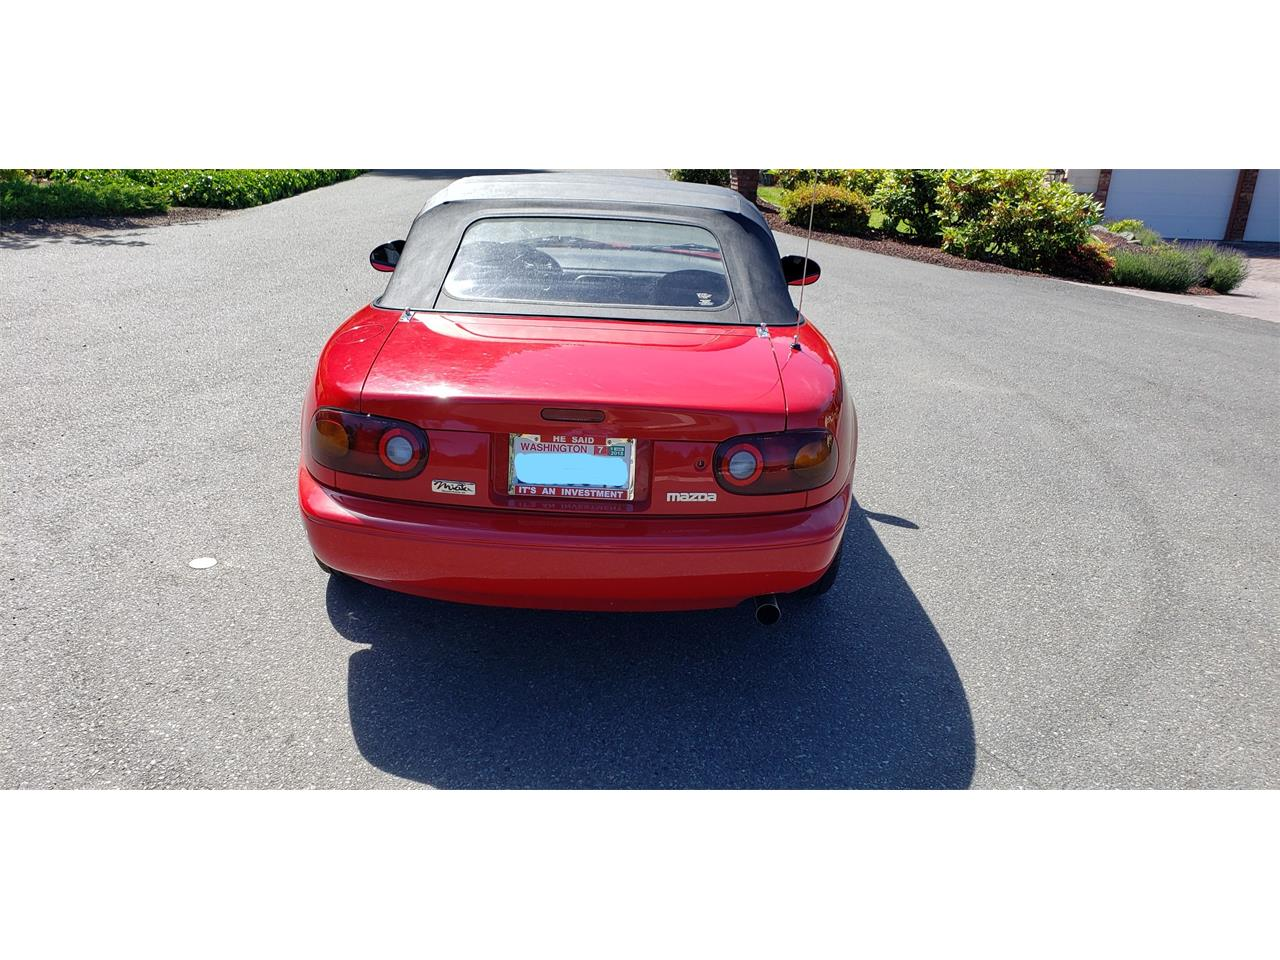 1991 Mazda Miata for sale in Camano Island, WA – photo 5